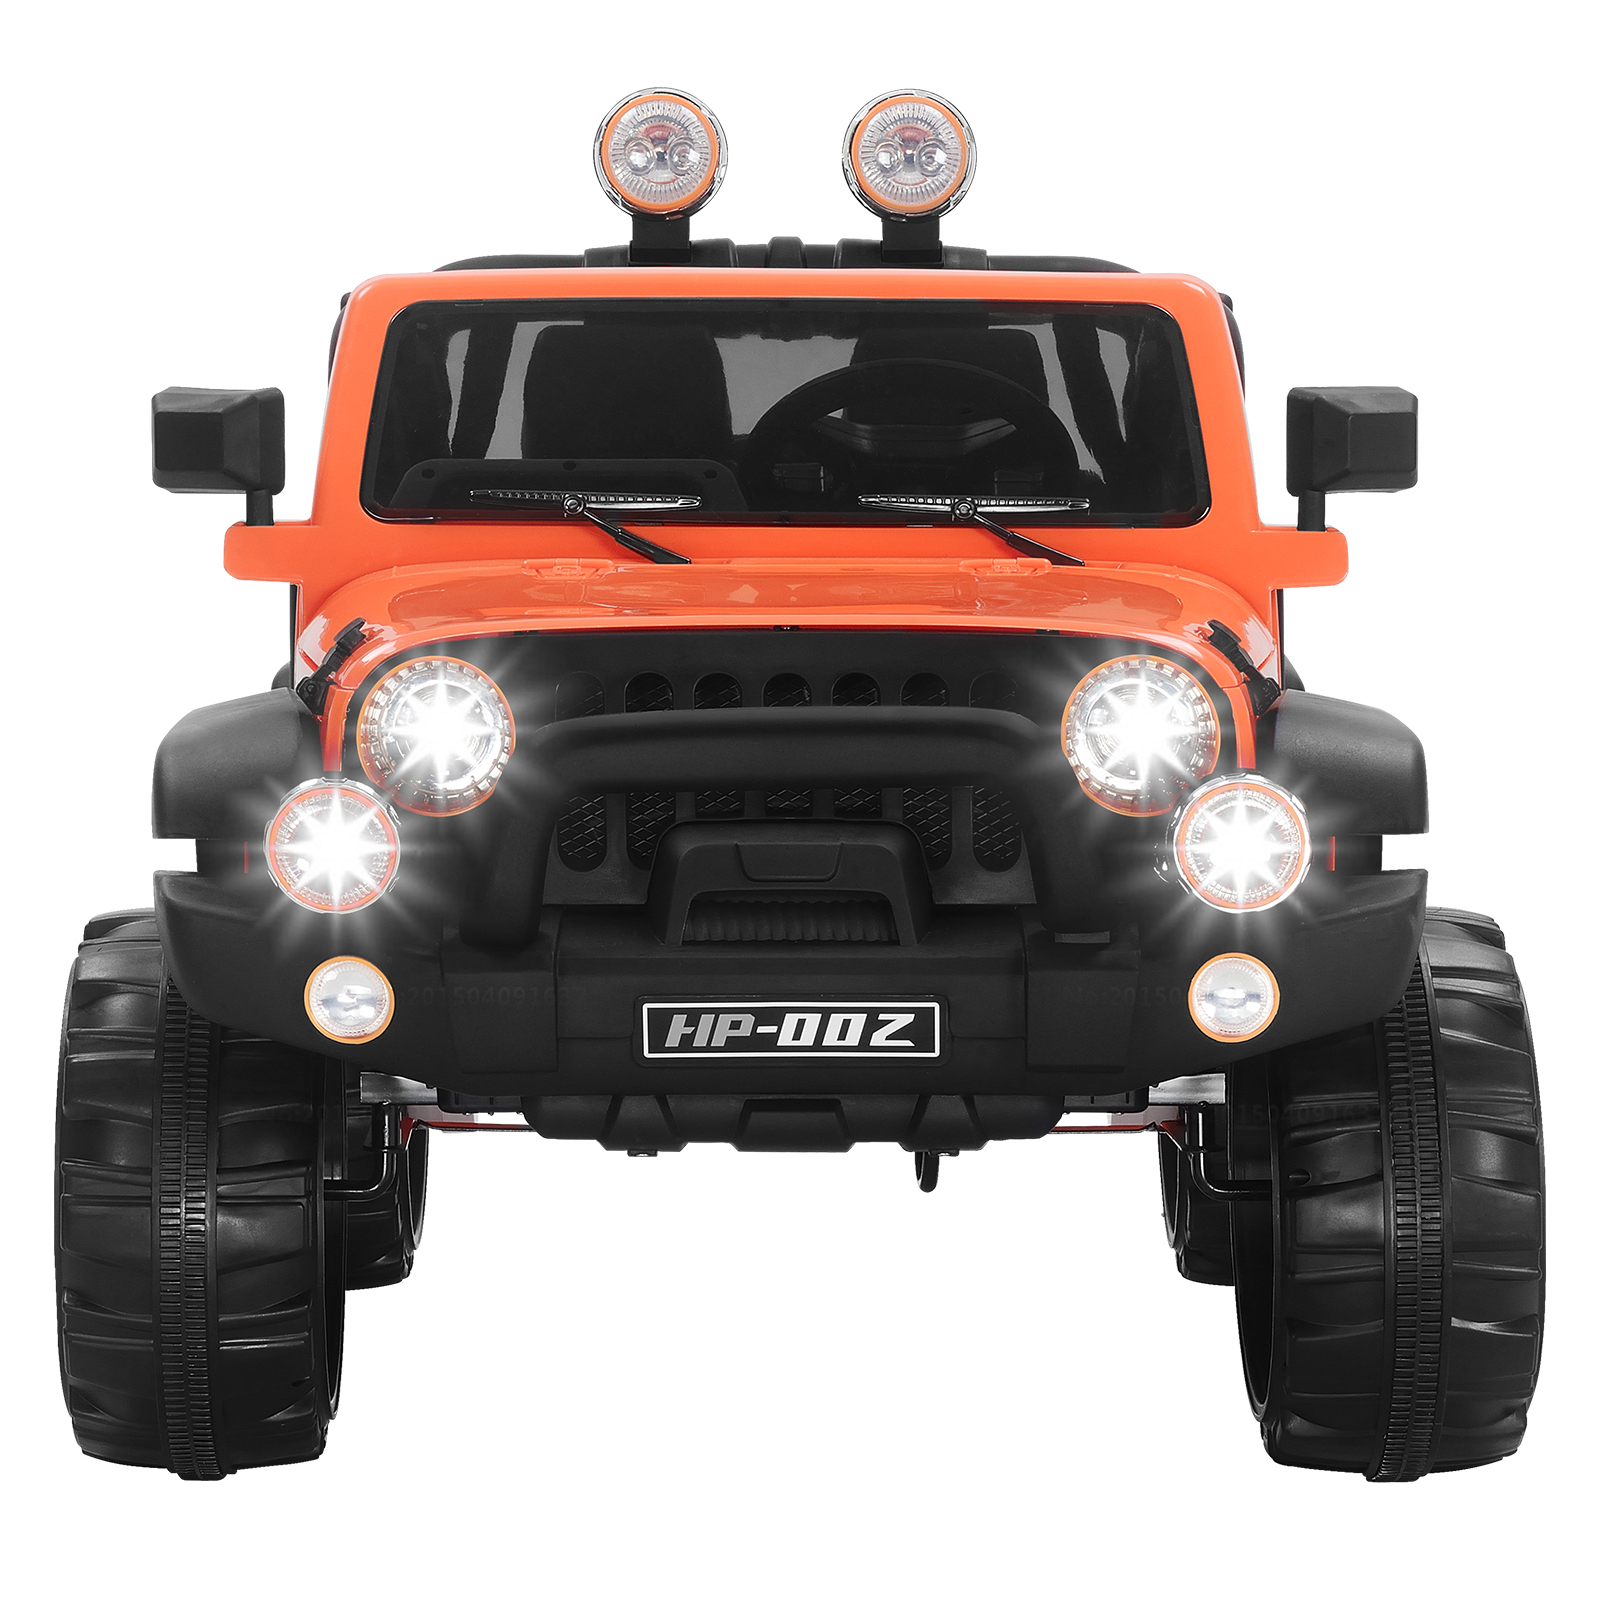 Kids Jeep Inspirational 12v Kids Ride On Cars Electric Battery Power Wheel Remote Control 4